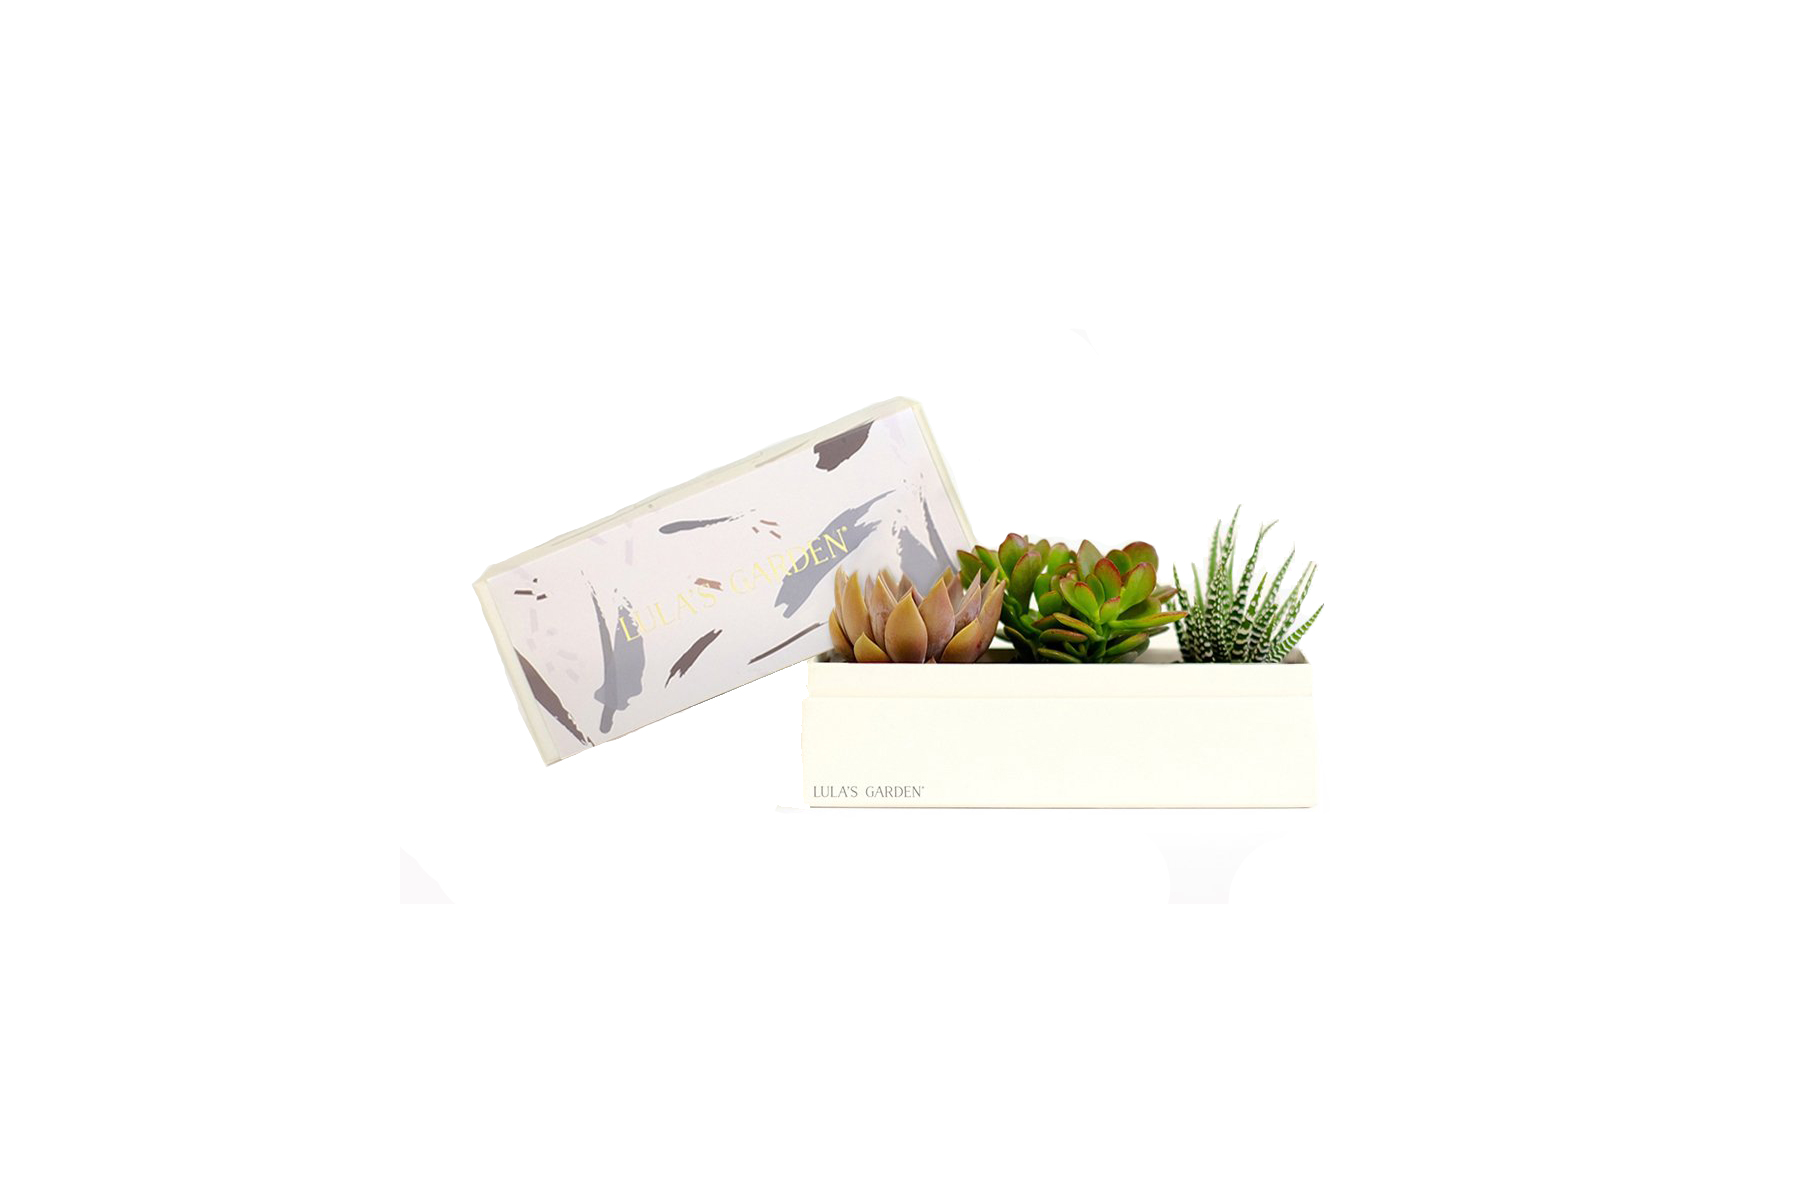 Lula's Garden Live Succulent Centerpiece and Gift Box